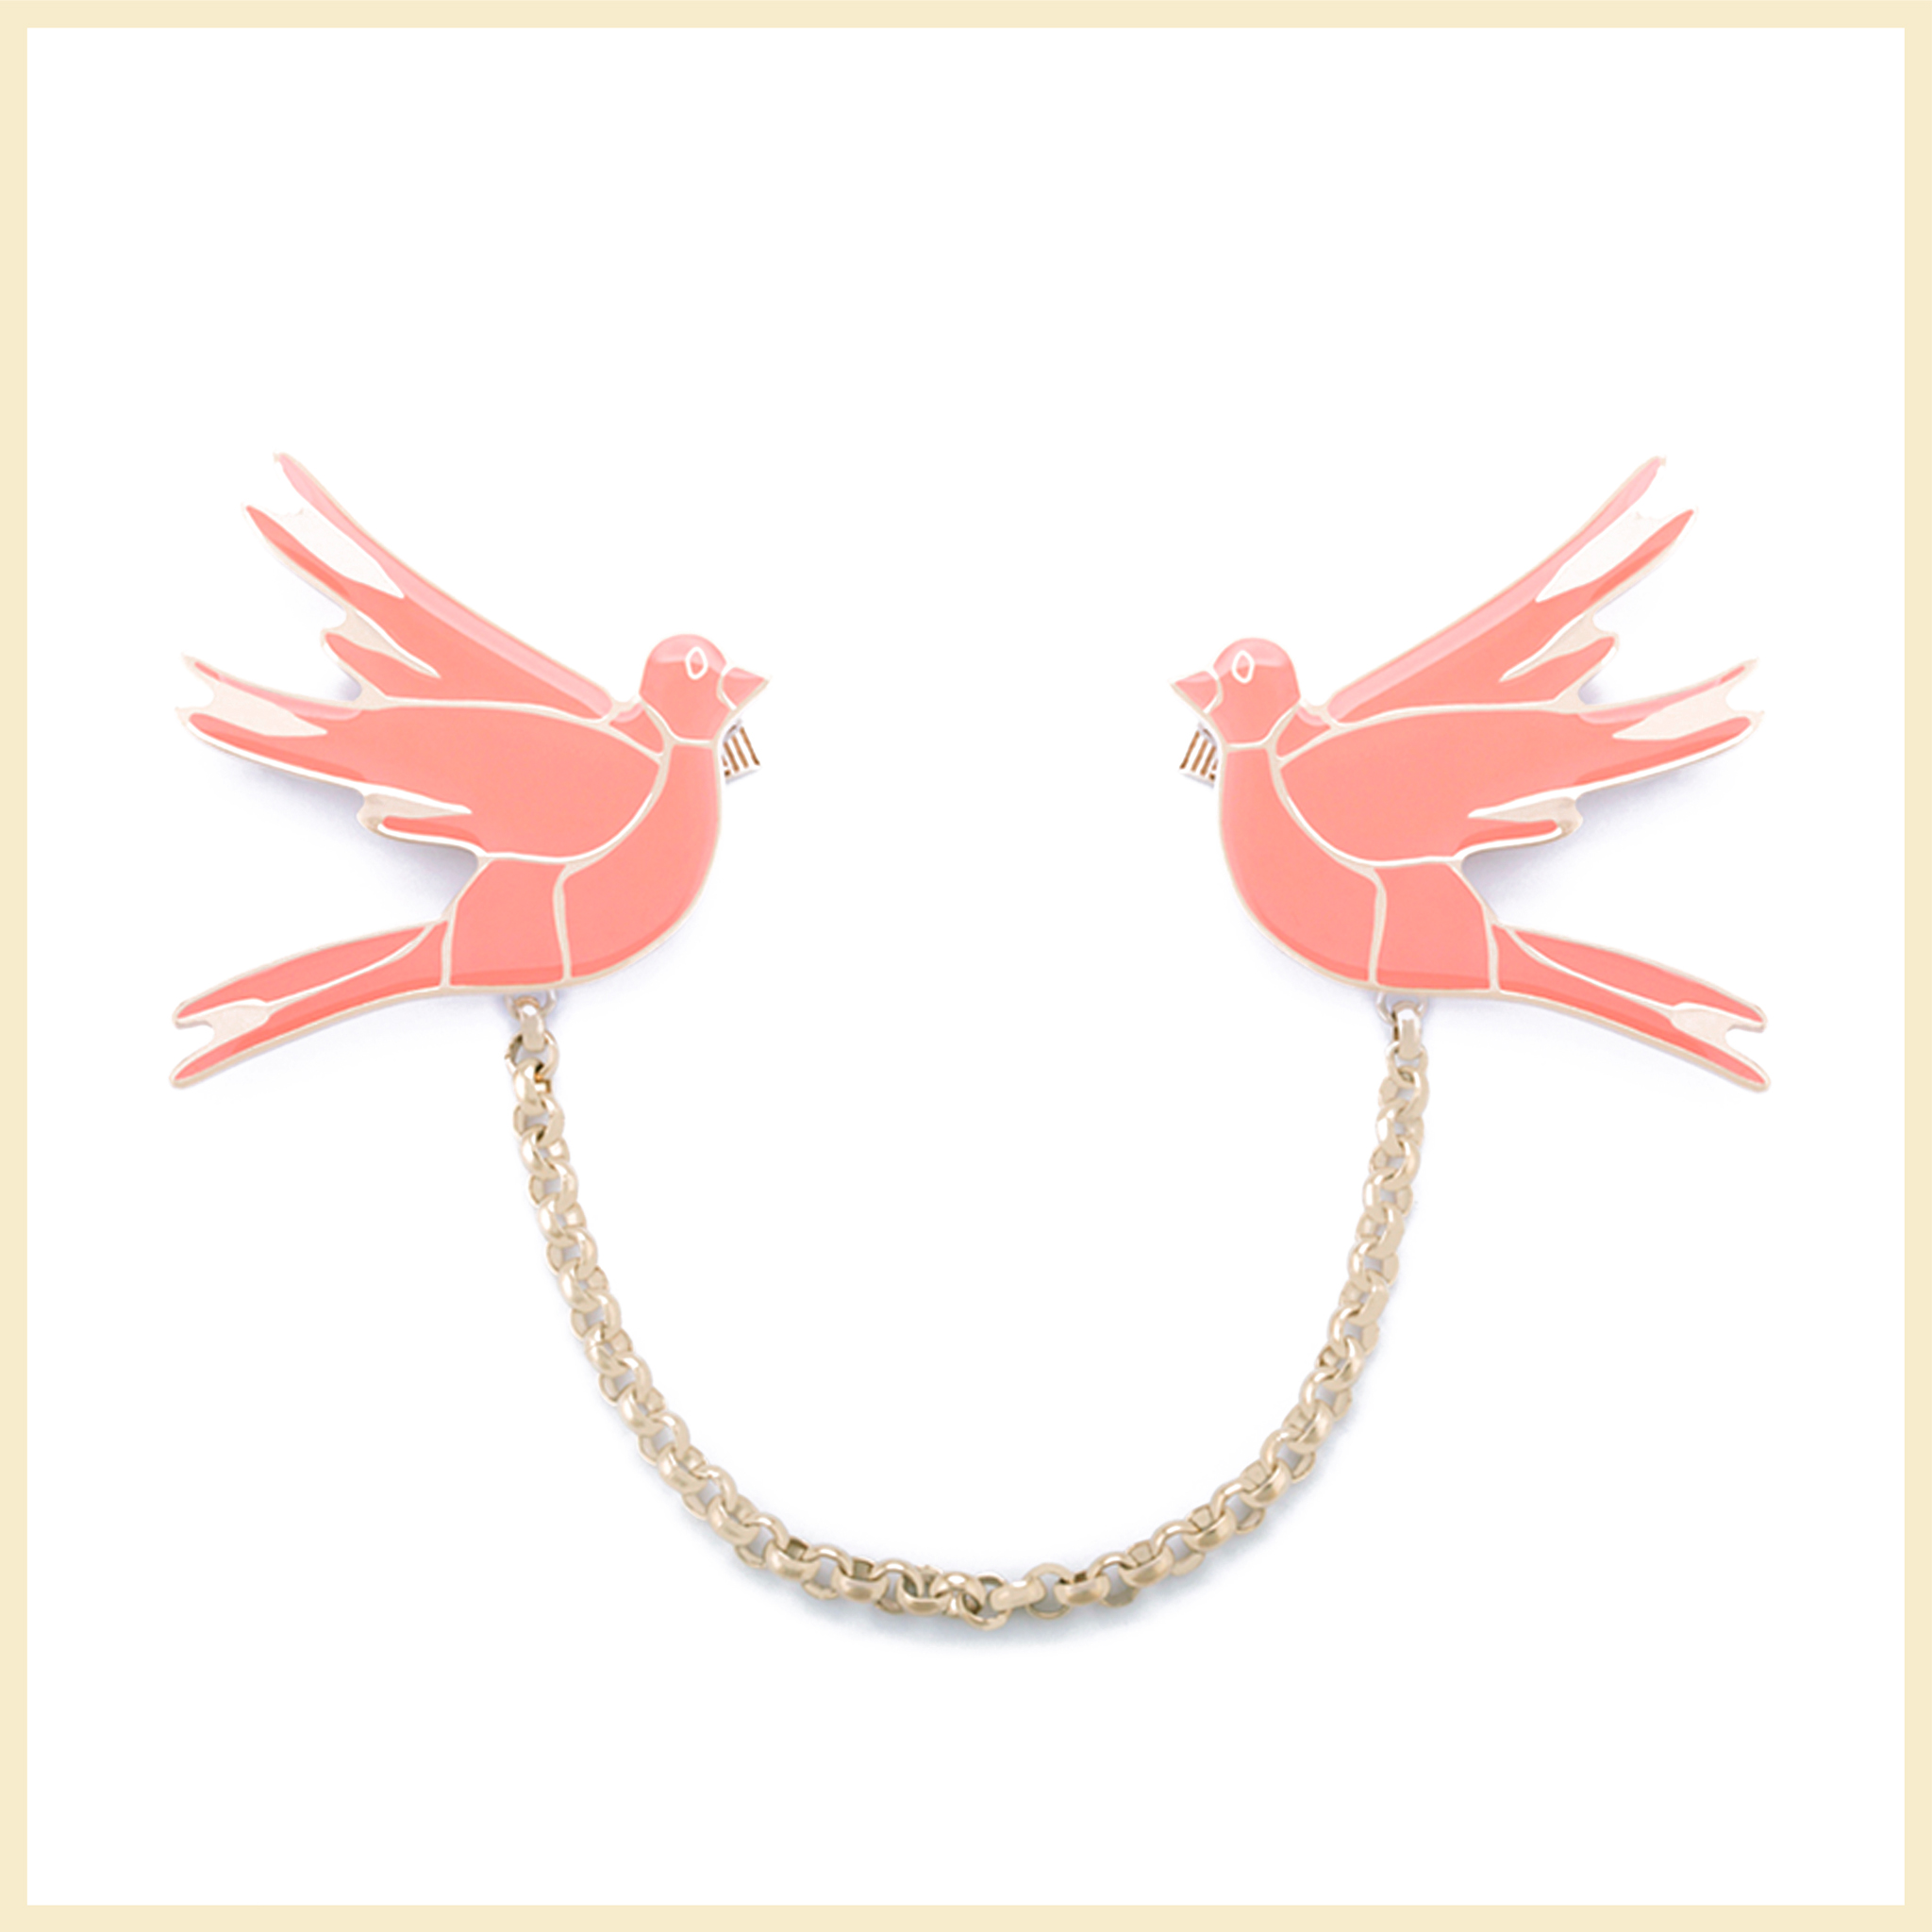 bird-clips-cordien-bijoux-jewel-1.jpg